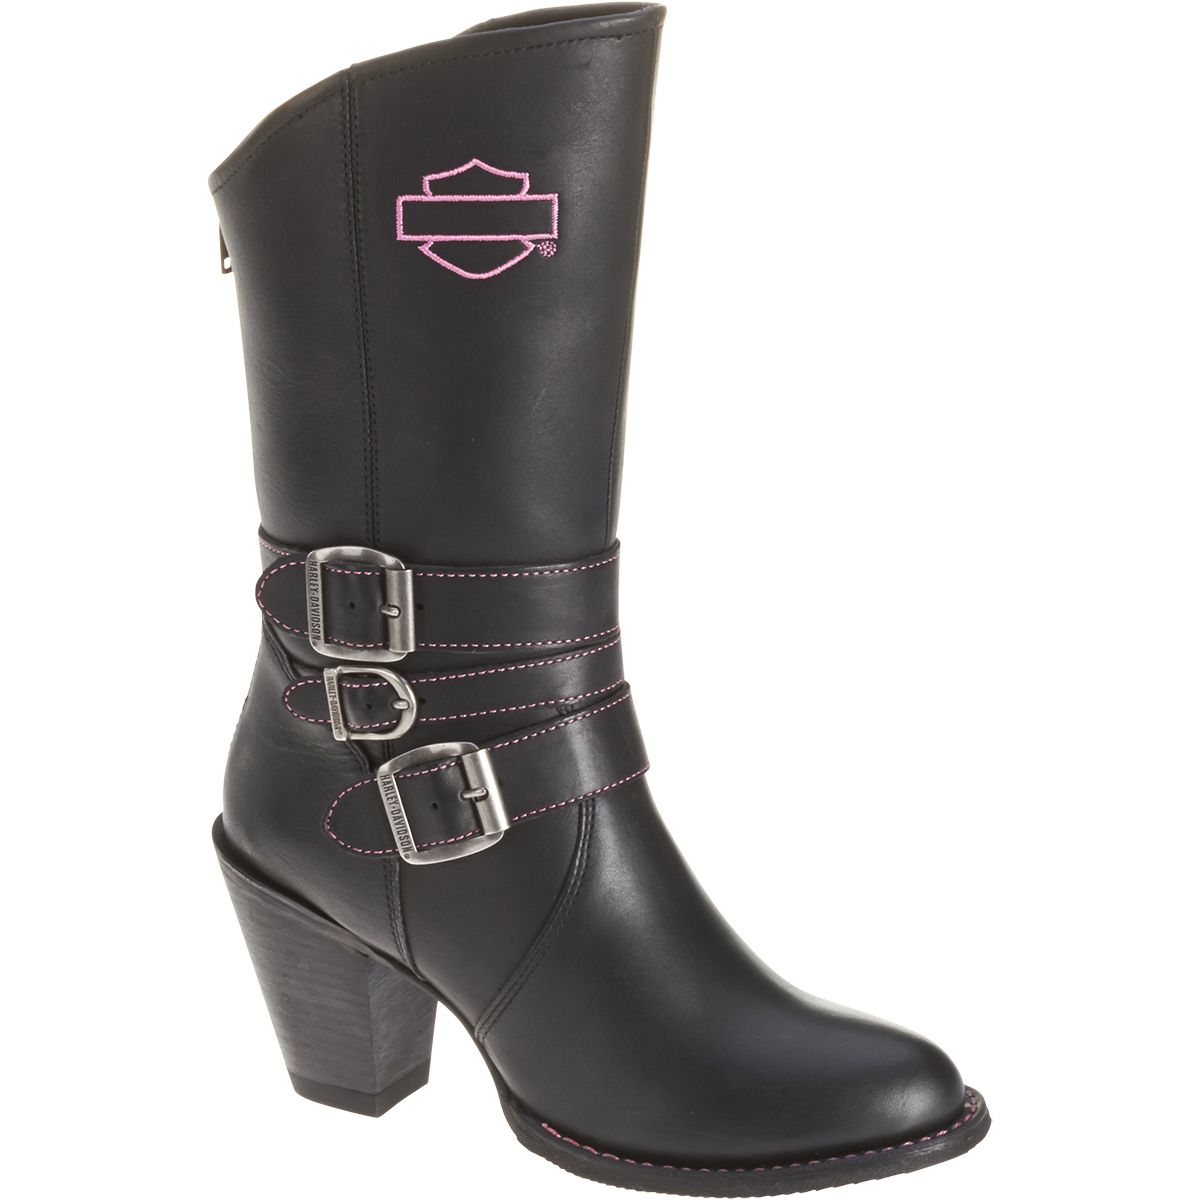 392455c6d21 Maddison women's riding boots from Harley-Davidson Footwear. Pink ...